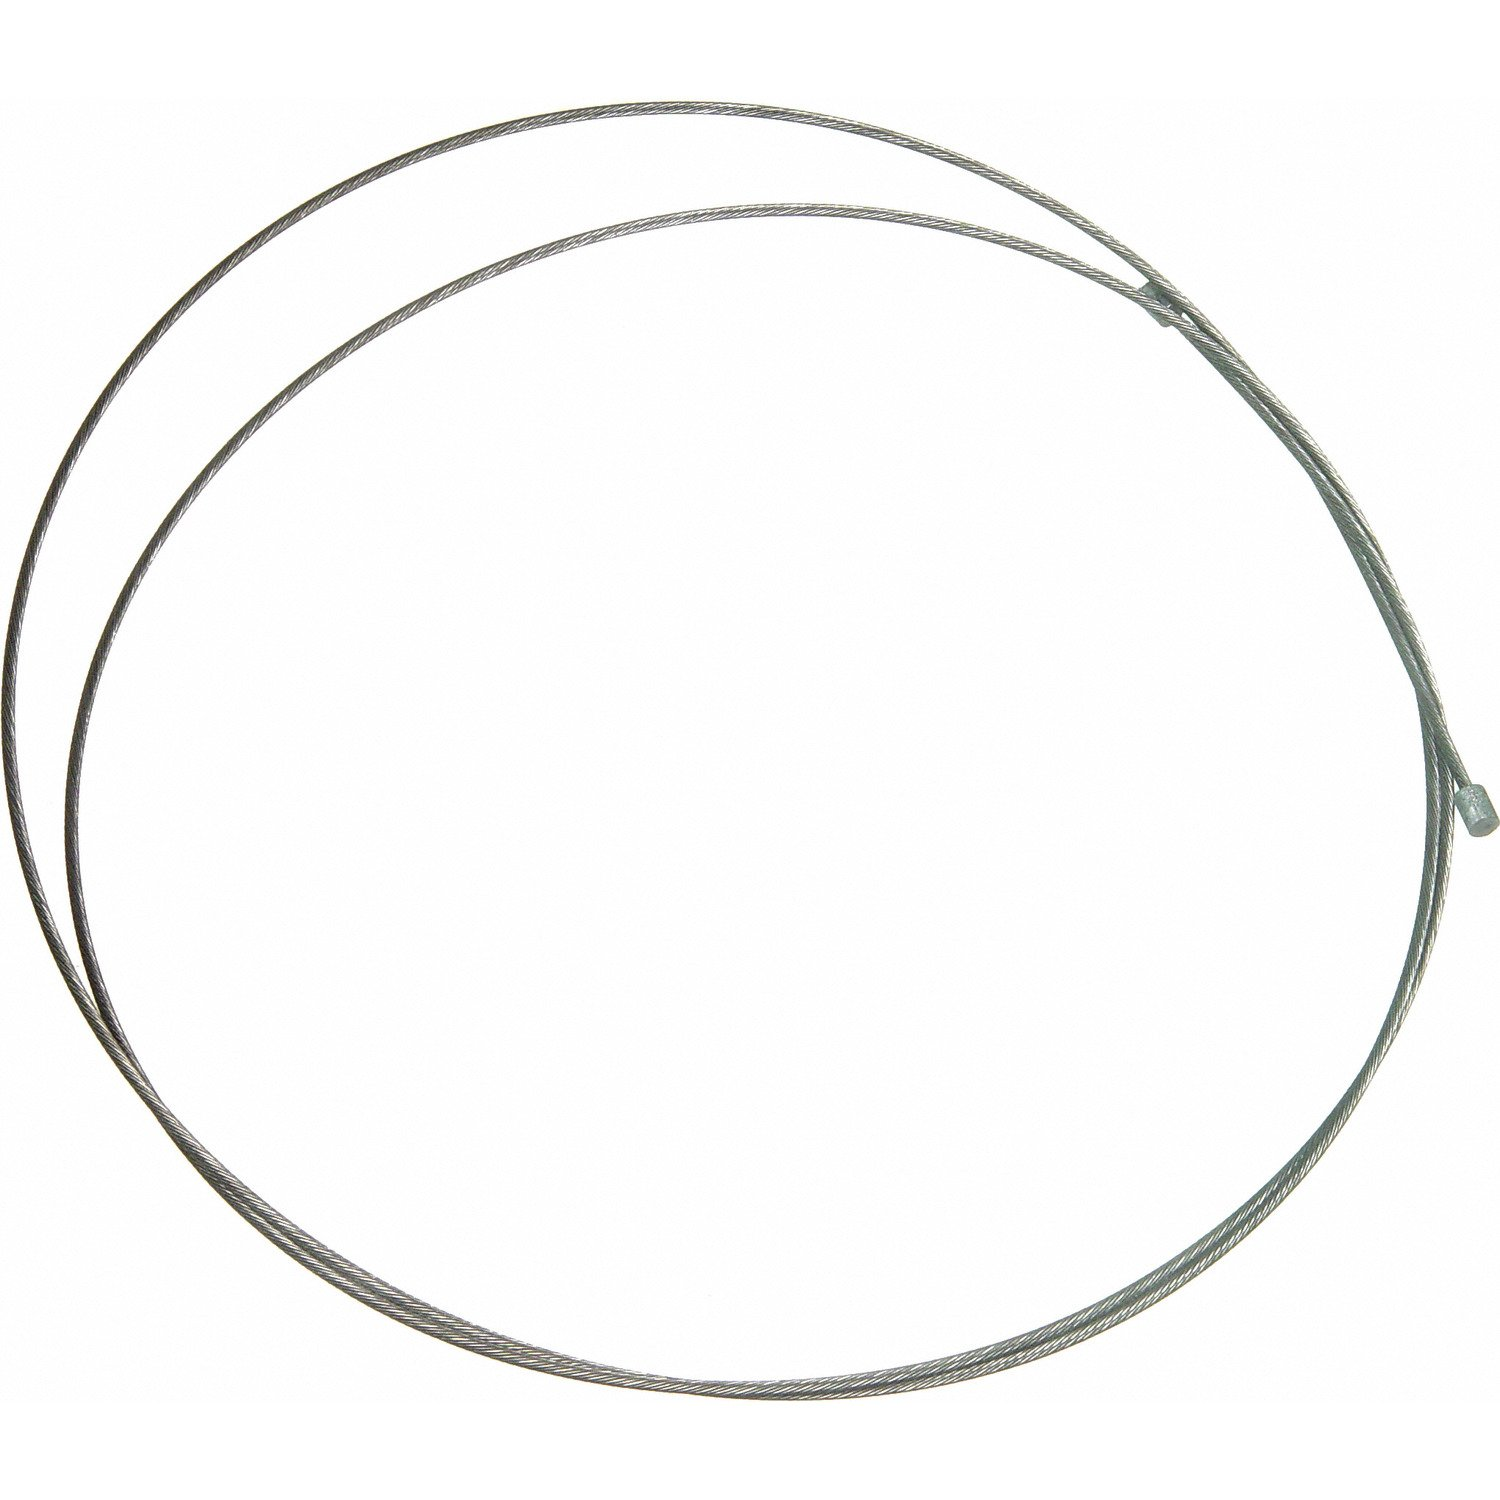 Wagner BC116482 Premium Praking Brake Cable, Intermediate